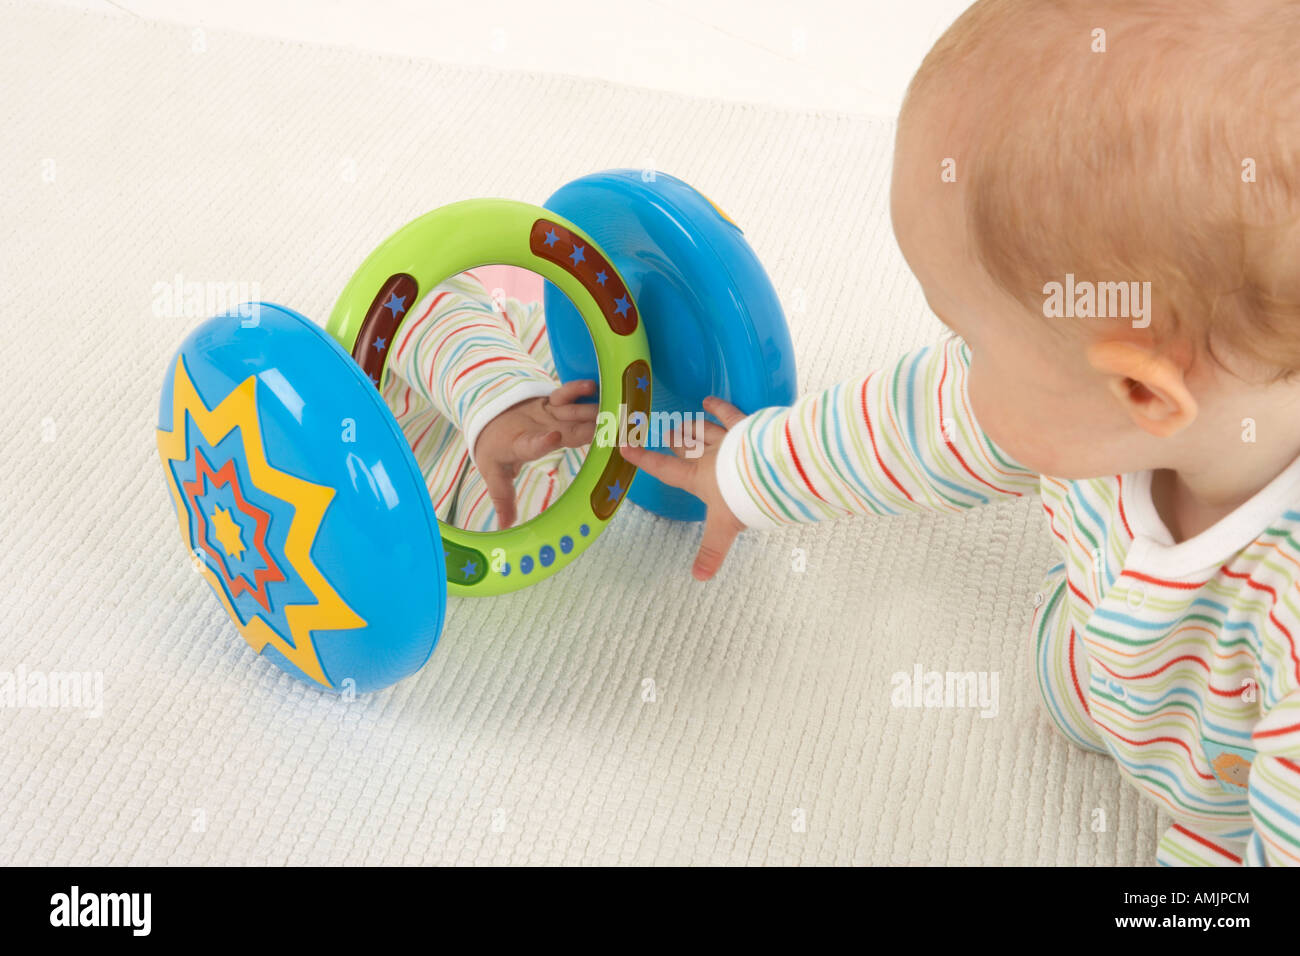 A Baby Plays On The Floor With A Mirror On Wheels Toy